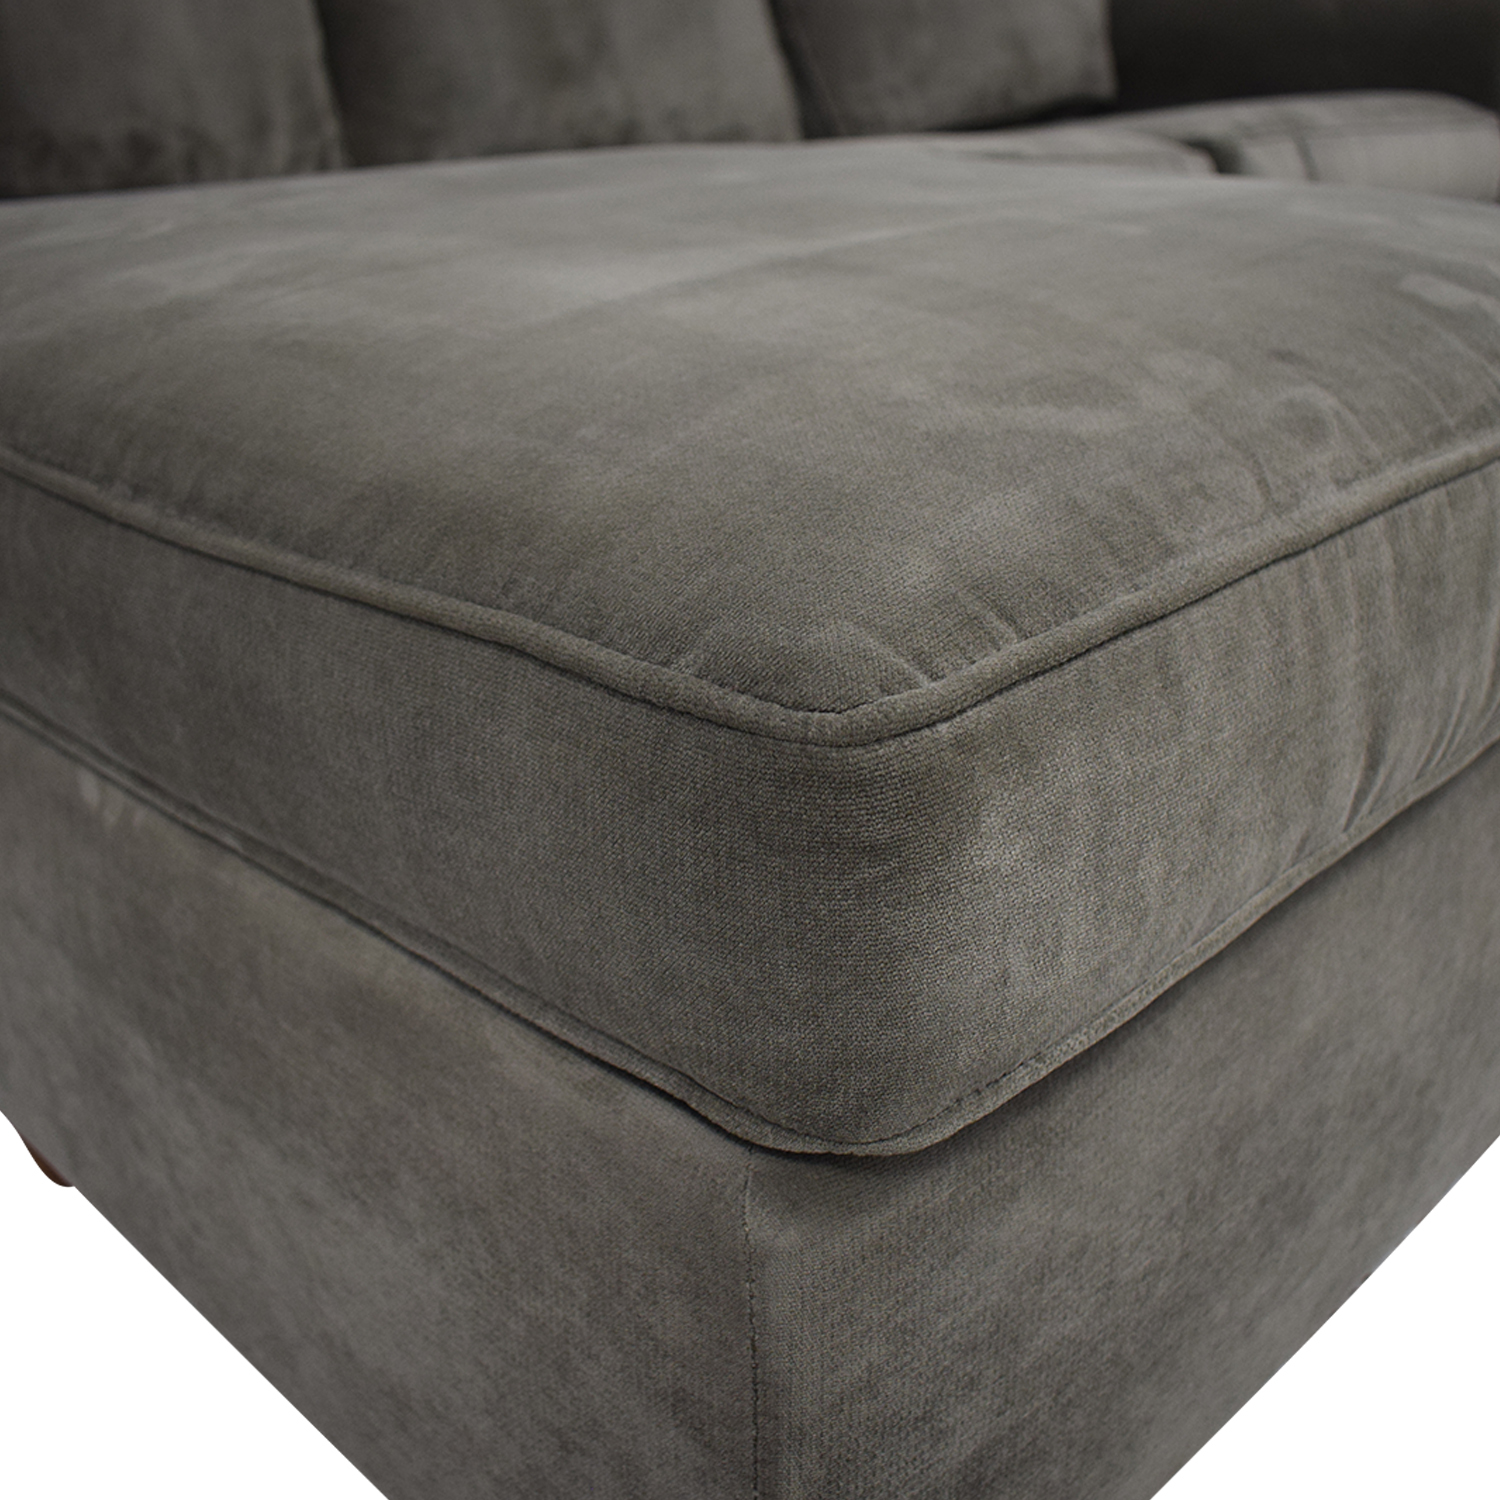 77 off macy s macy s lidia chaise sectional queen sleeper sofa sofas